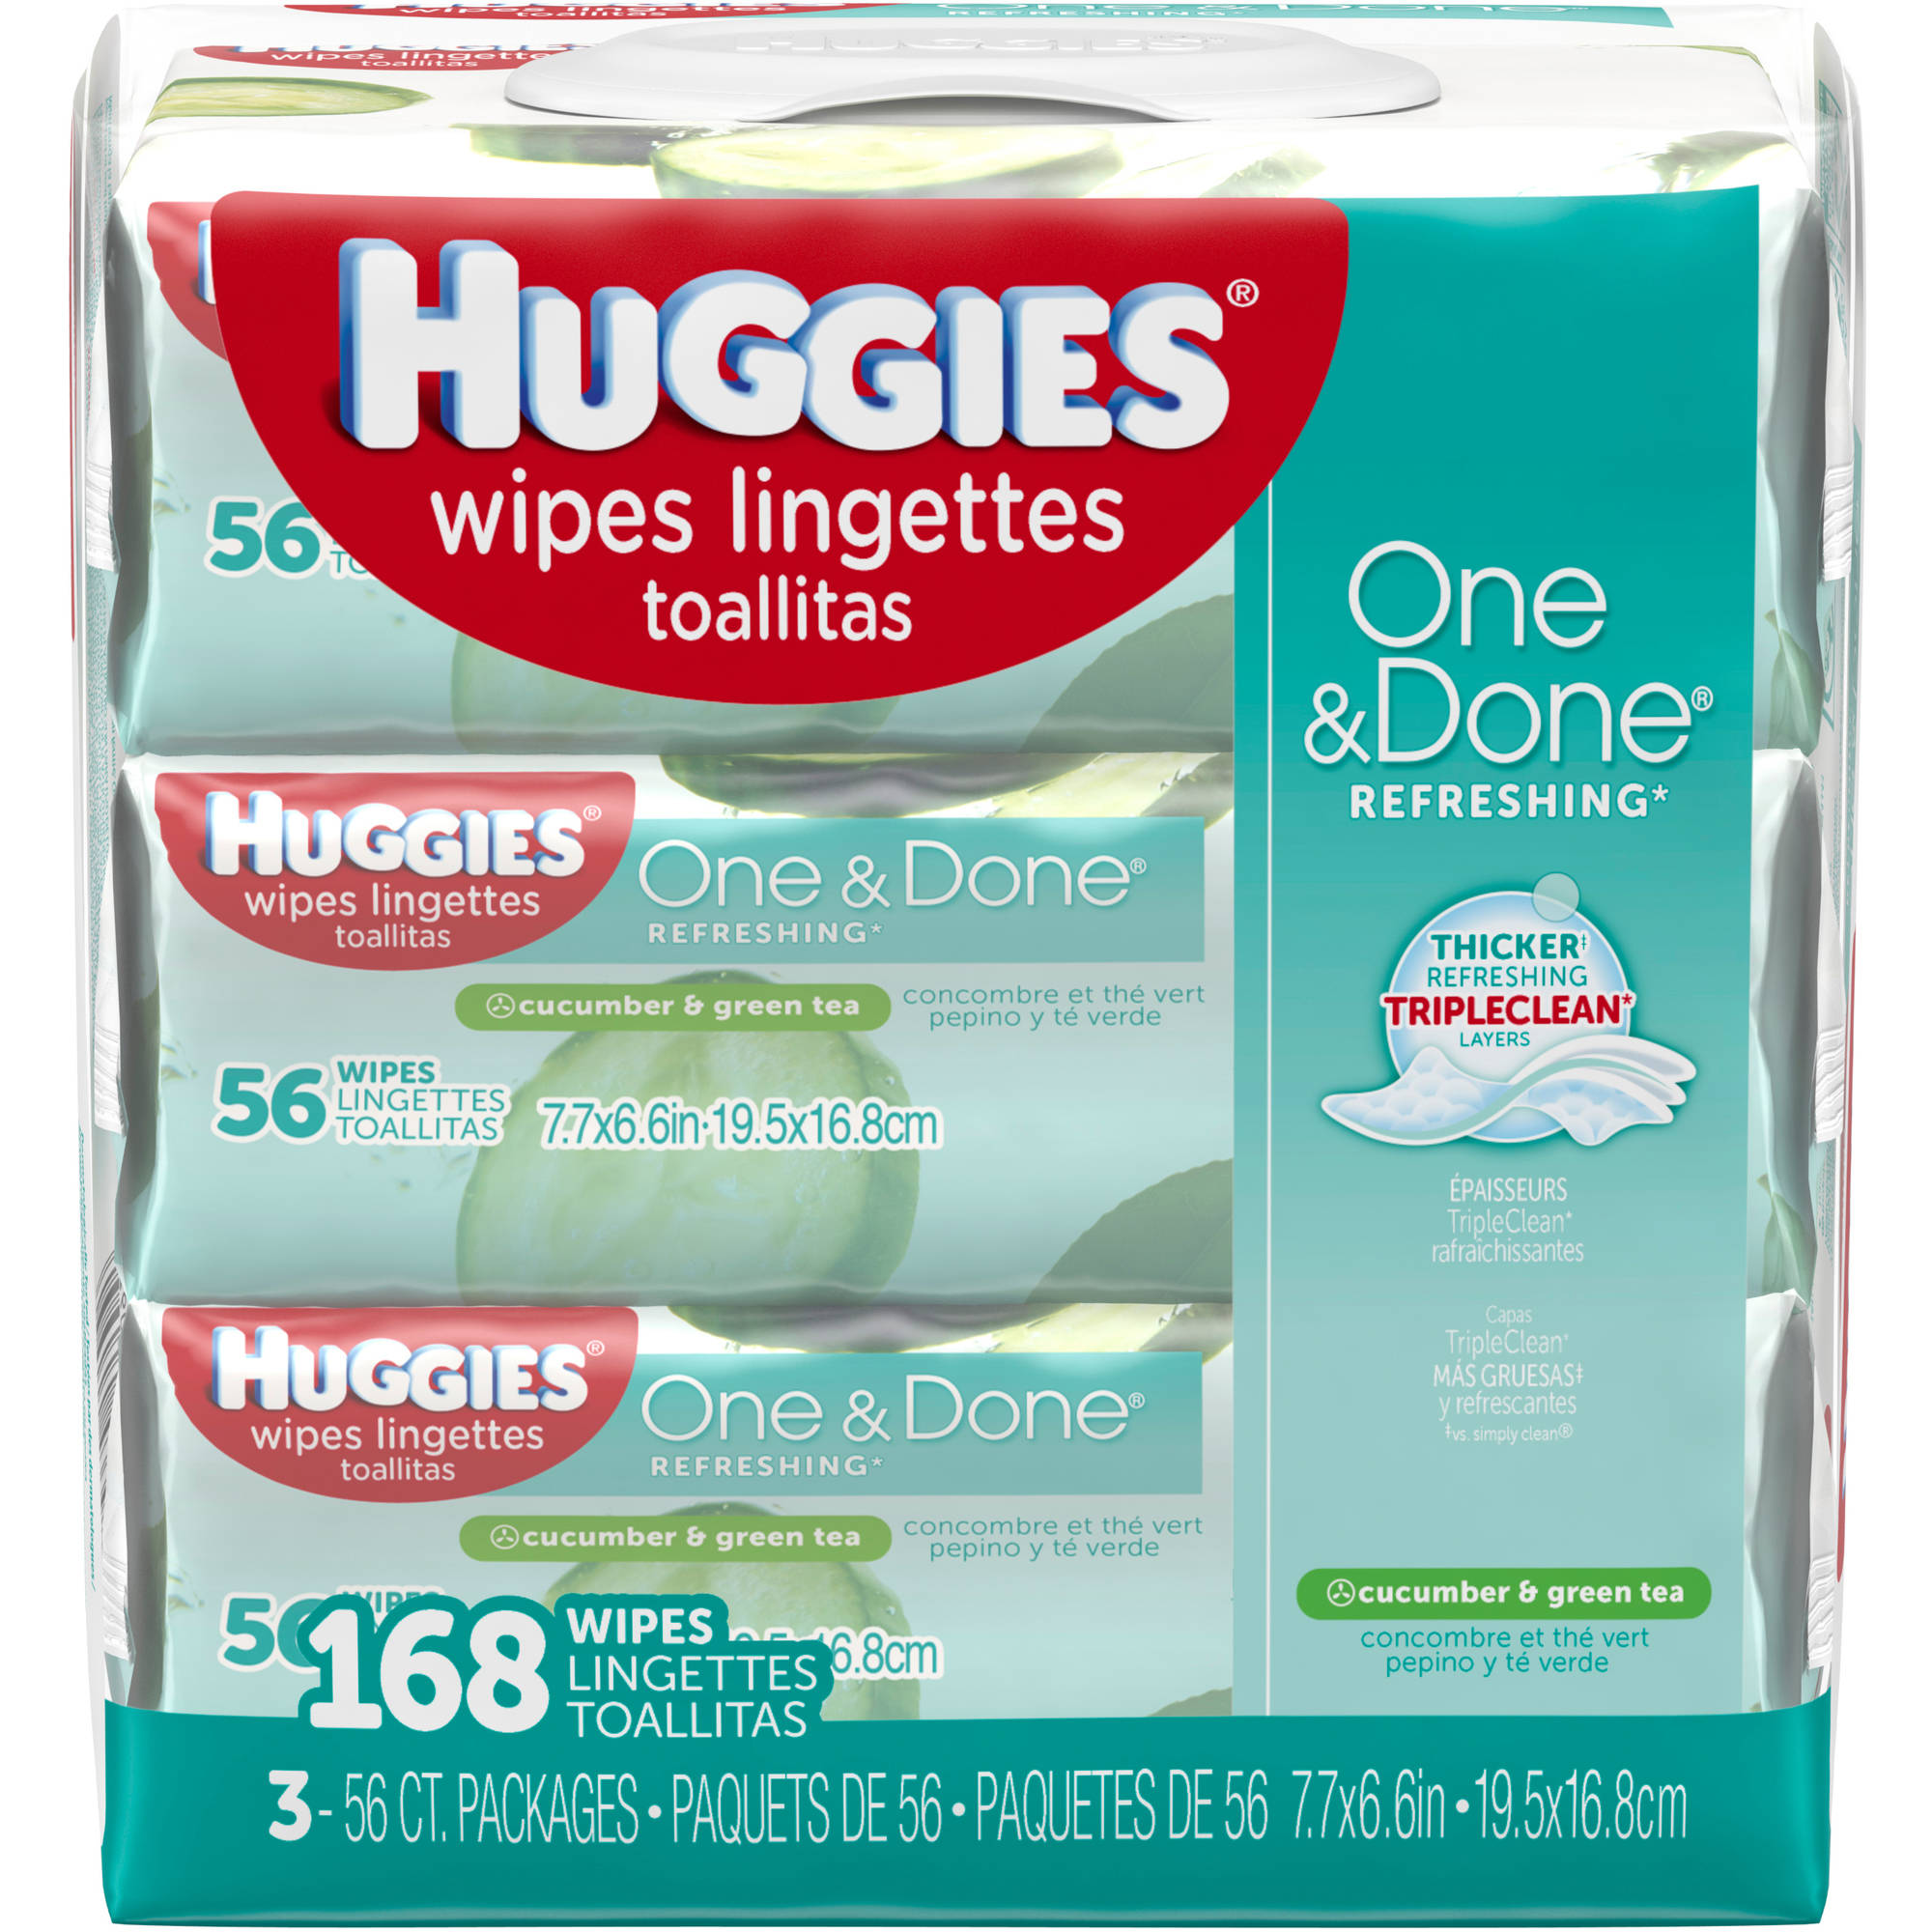 HUGGIES One & Done Refreshing Cucumber & Green Tea Baby Wipes, 56 sheets, (Pack of 3)